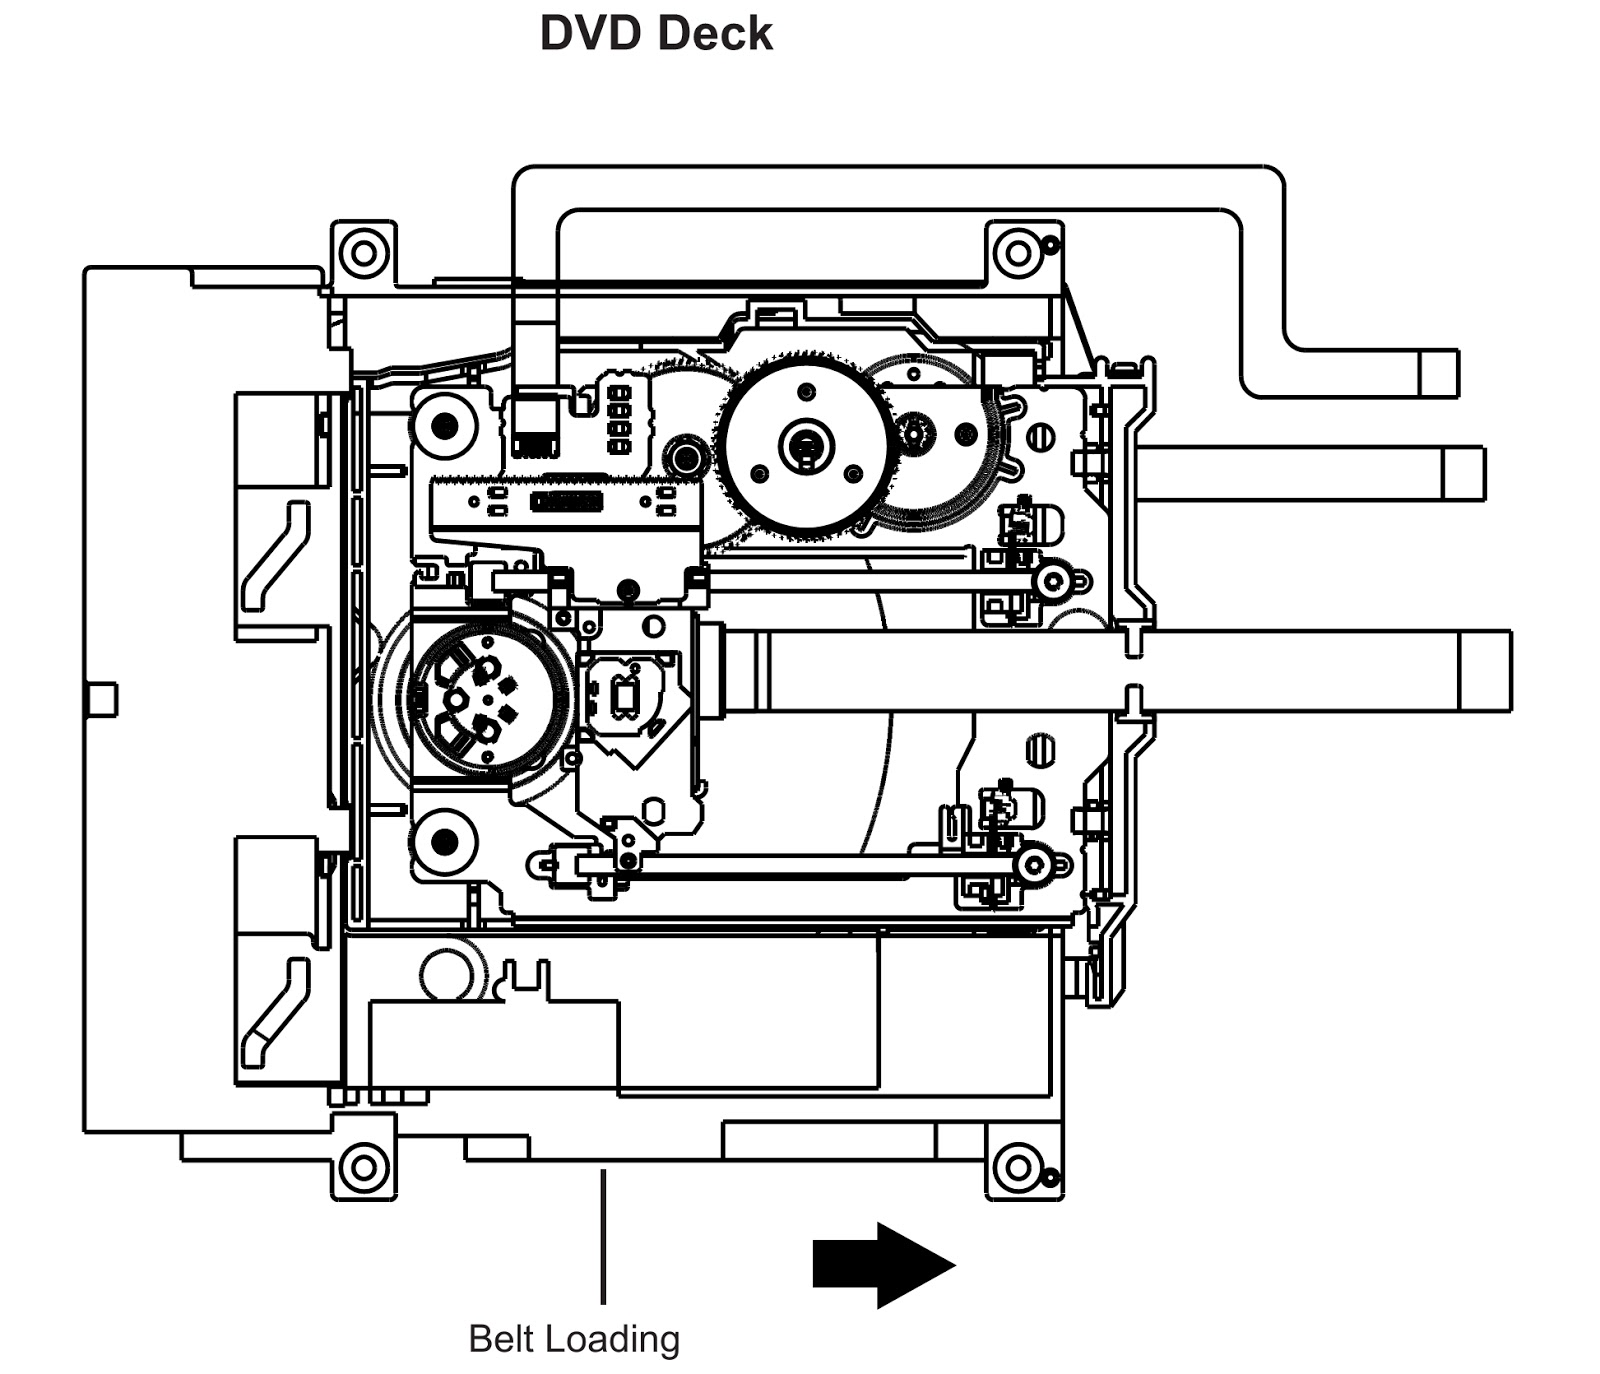 rca 32wd26d - lcd tv - password cancellation - disc removal method at no power supply